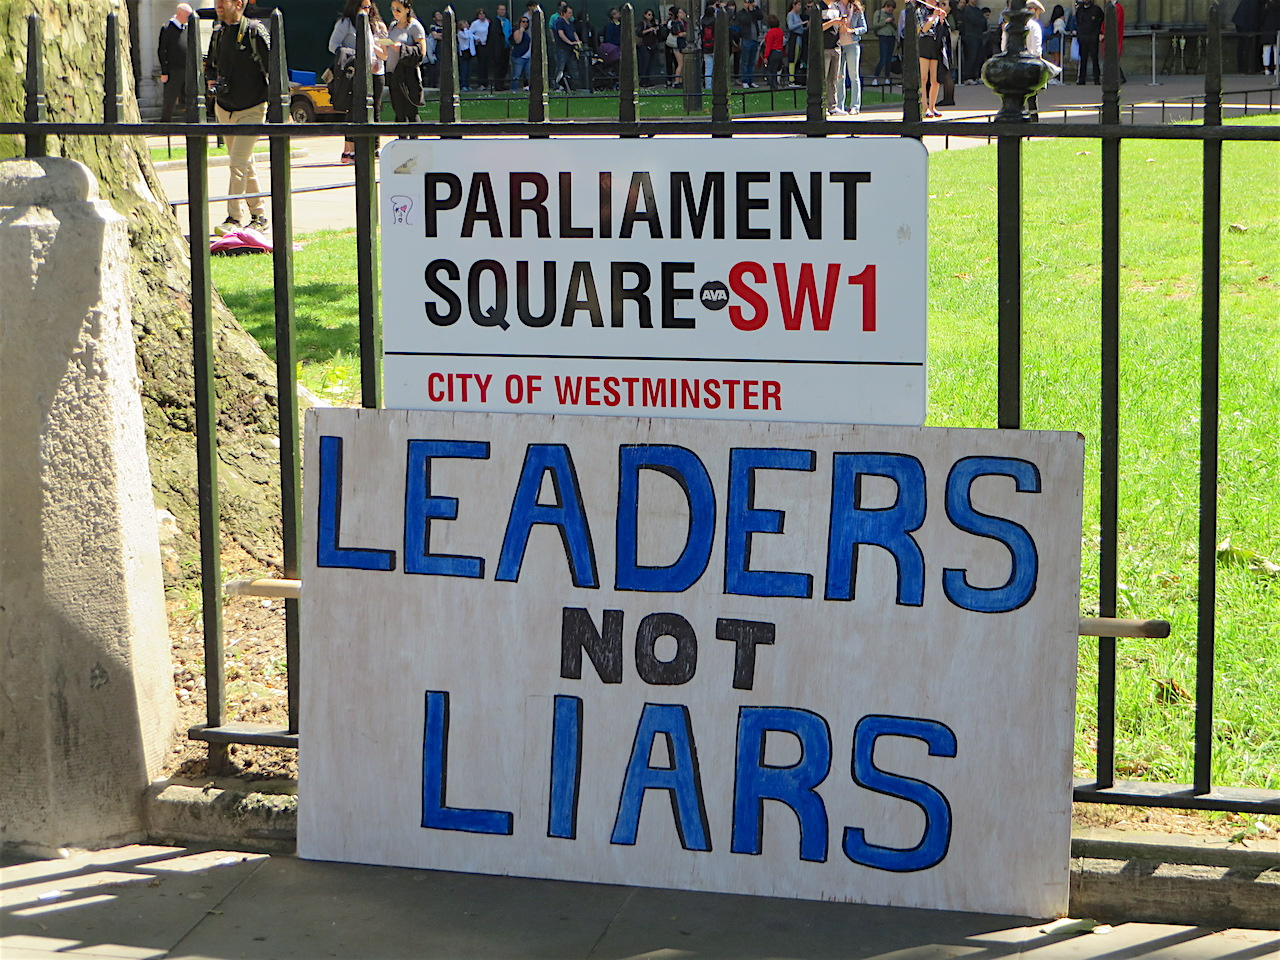 Leaders not liars: a poster on the March for Europe in London on July 2, 2016 (Photo: Andy Worthington).